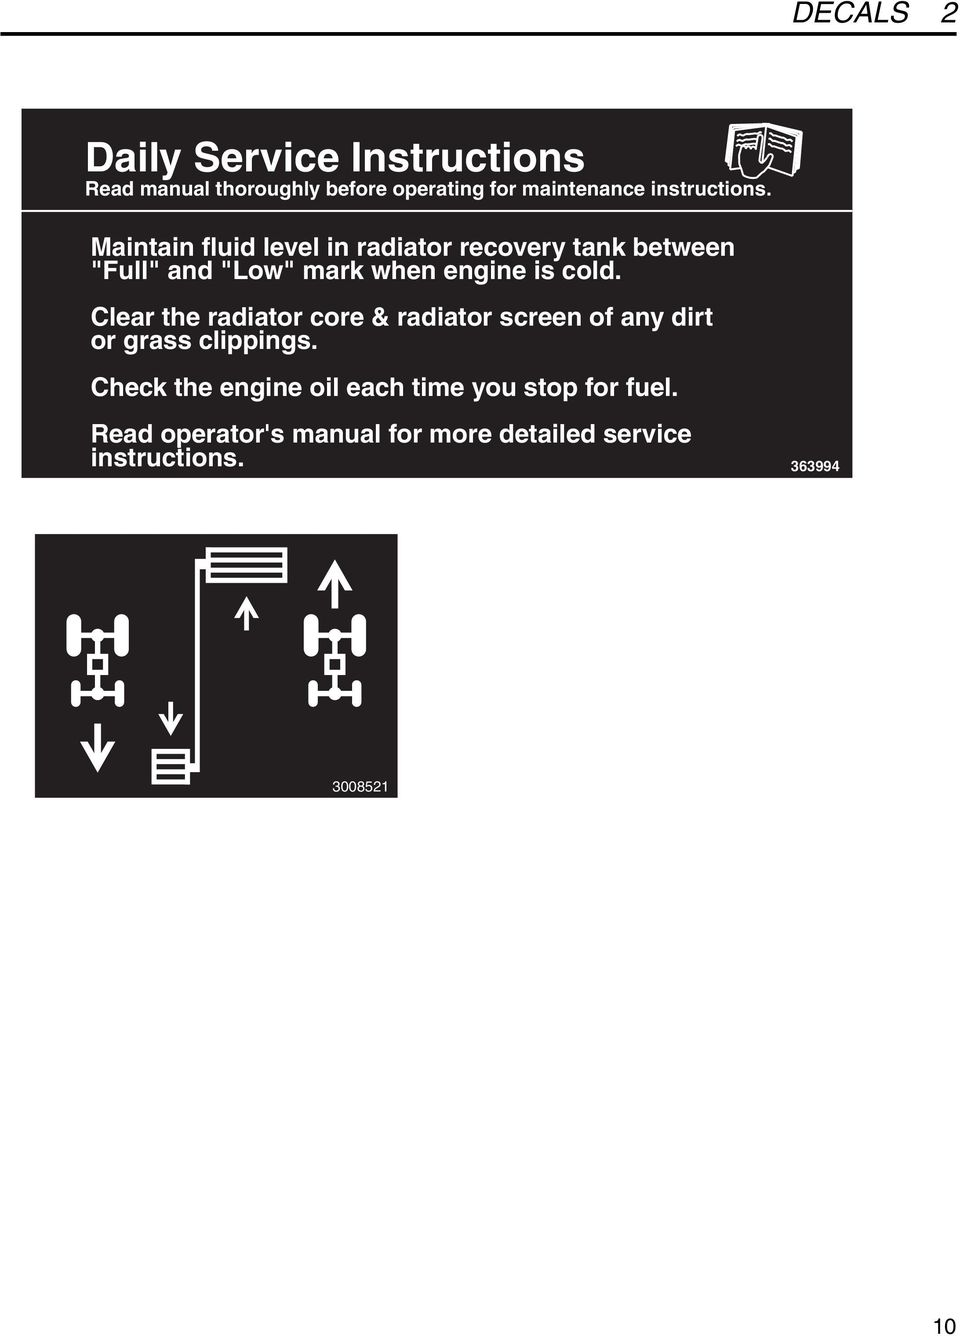 "Maintain fluid level in radiator recovery tank between ""Full"" and ""Low"" mark when engine is cold."